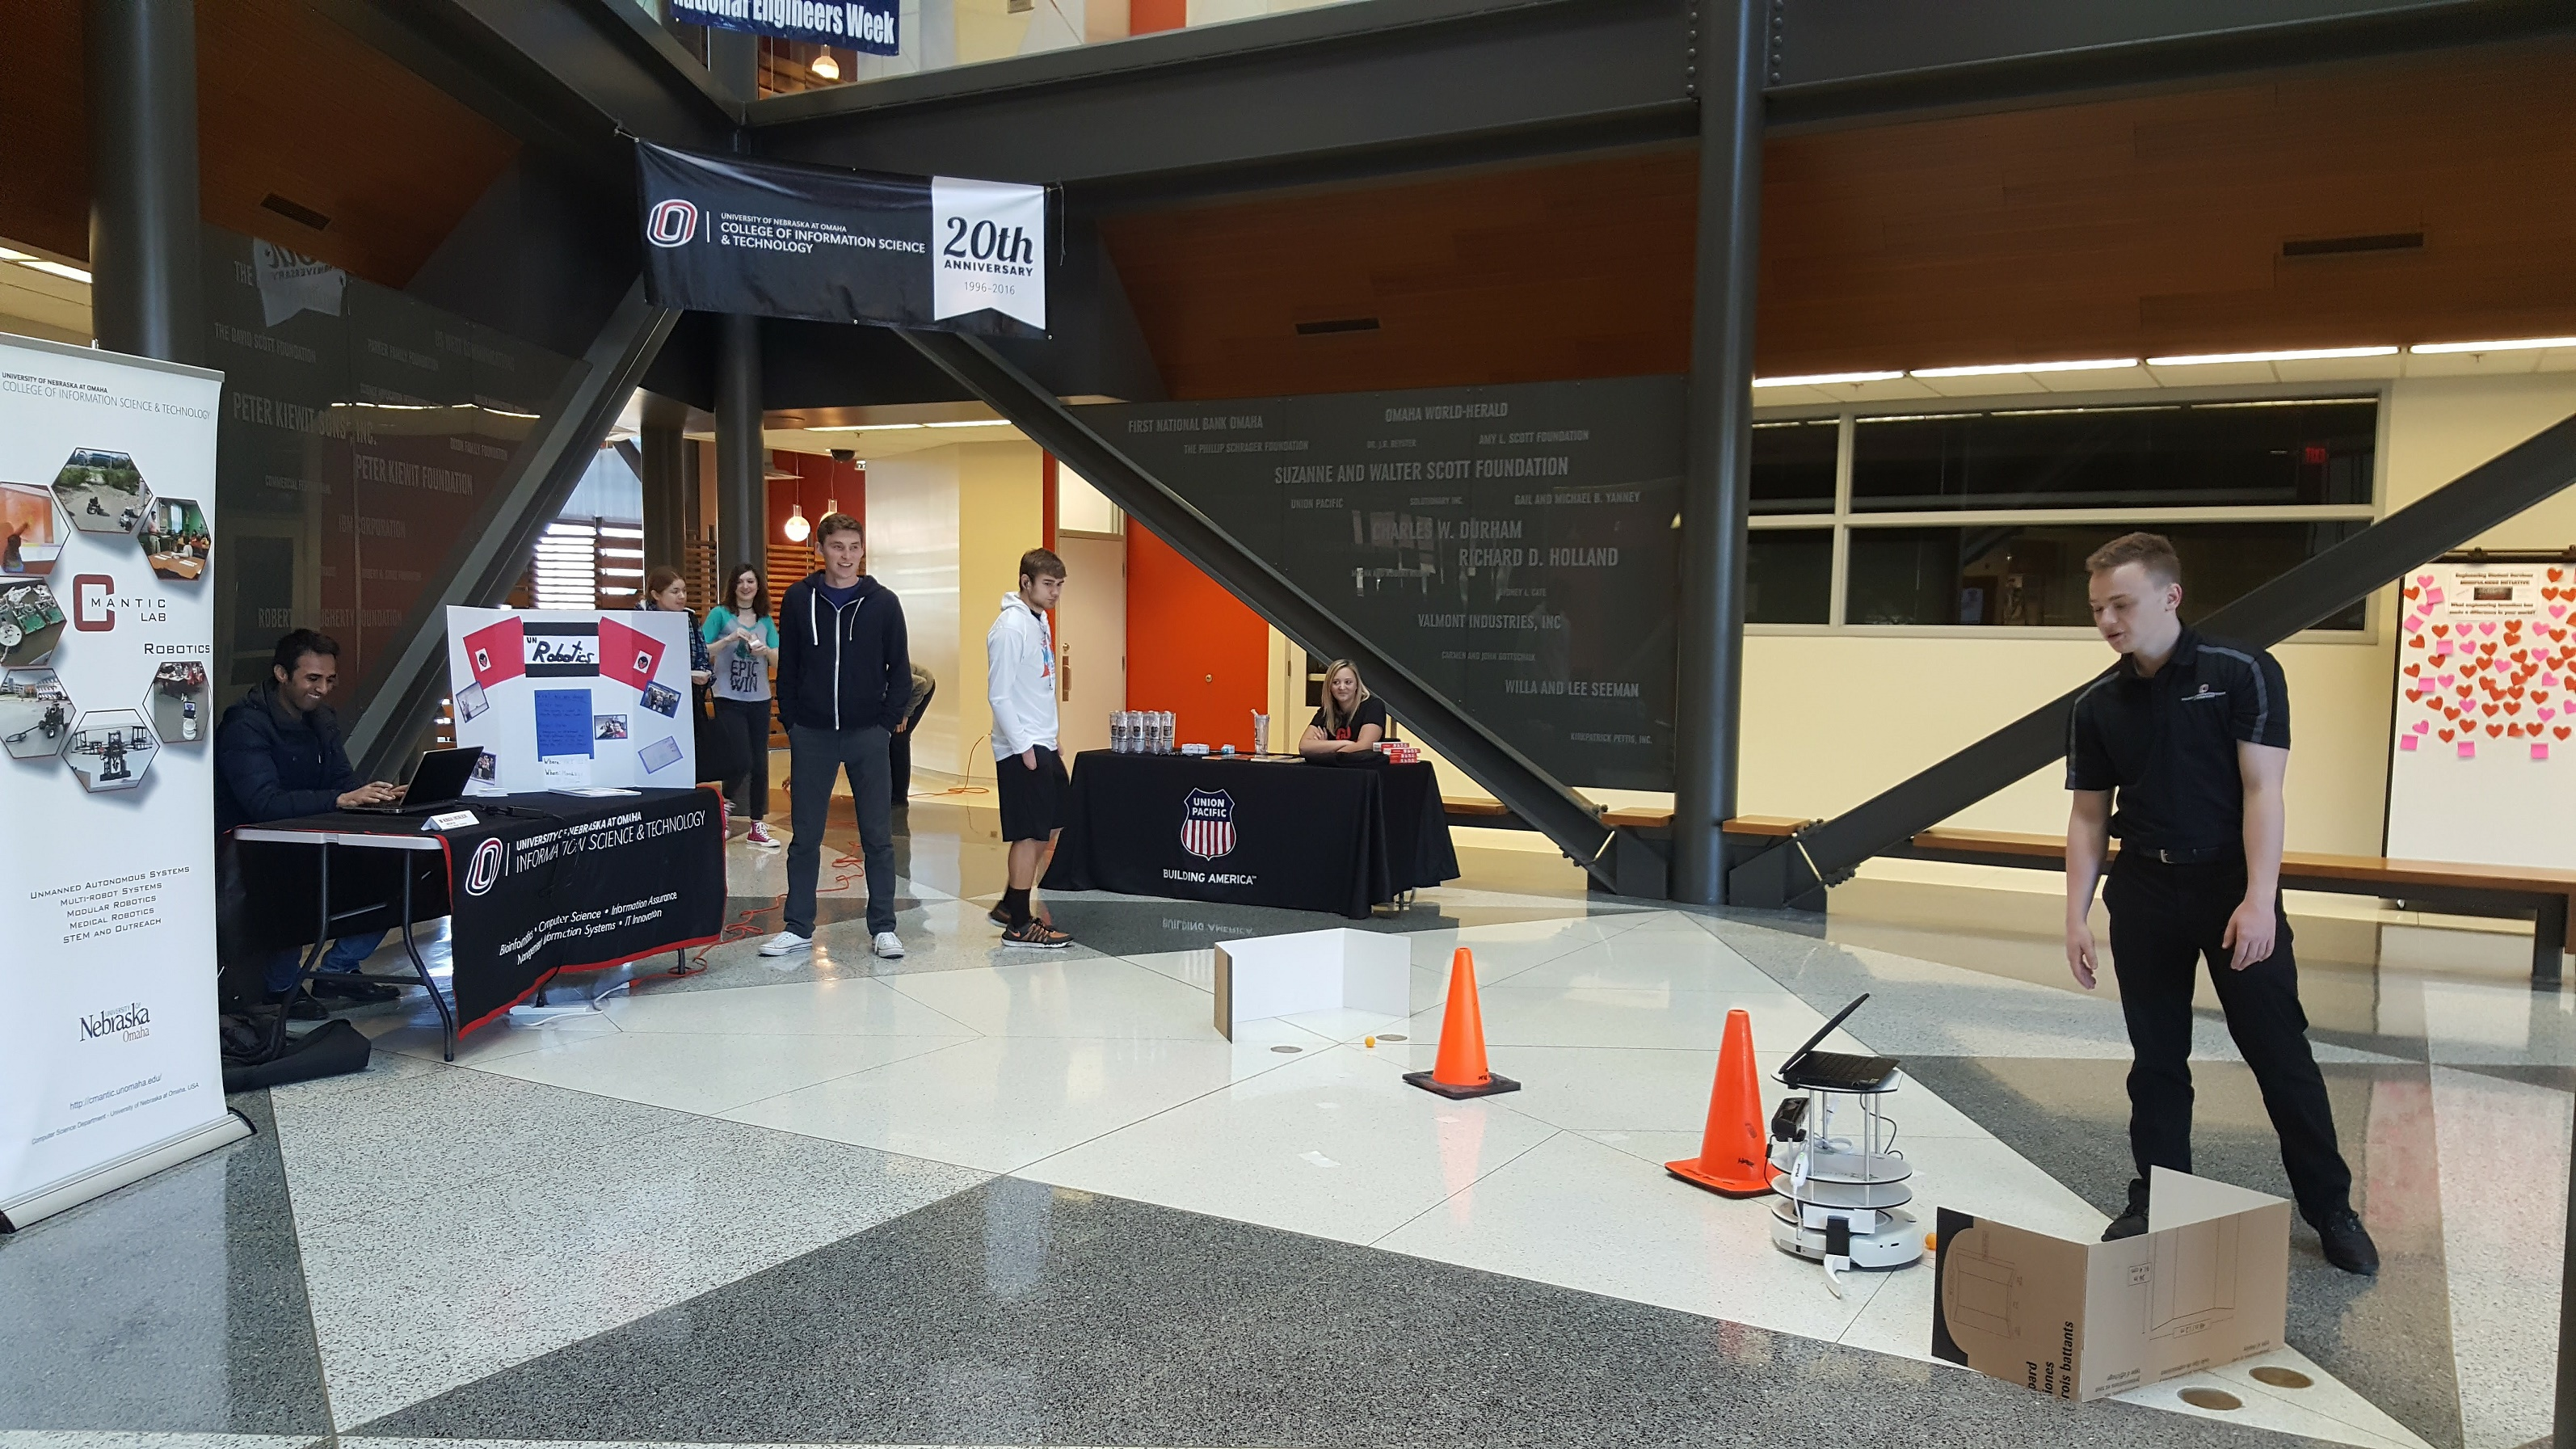 UN Robotics Competition in the Peter Kiewit Institute was supported by Union Pacific as a Diamond Level Sponsor.